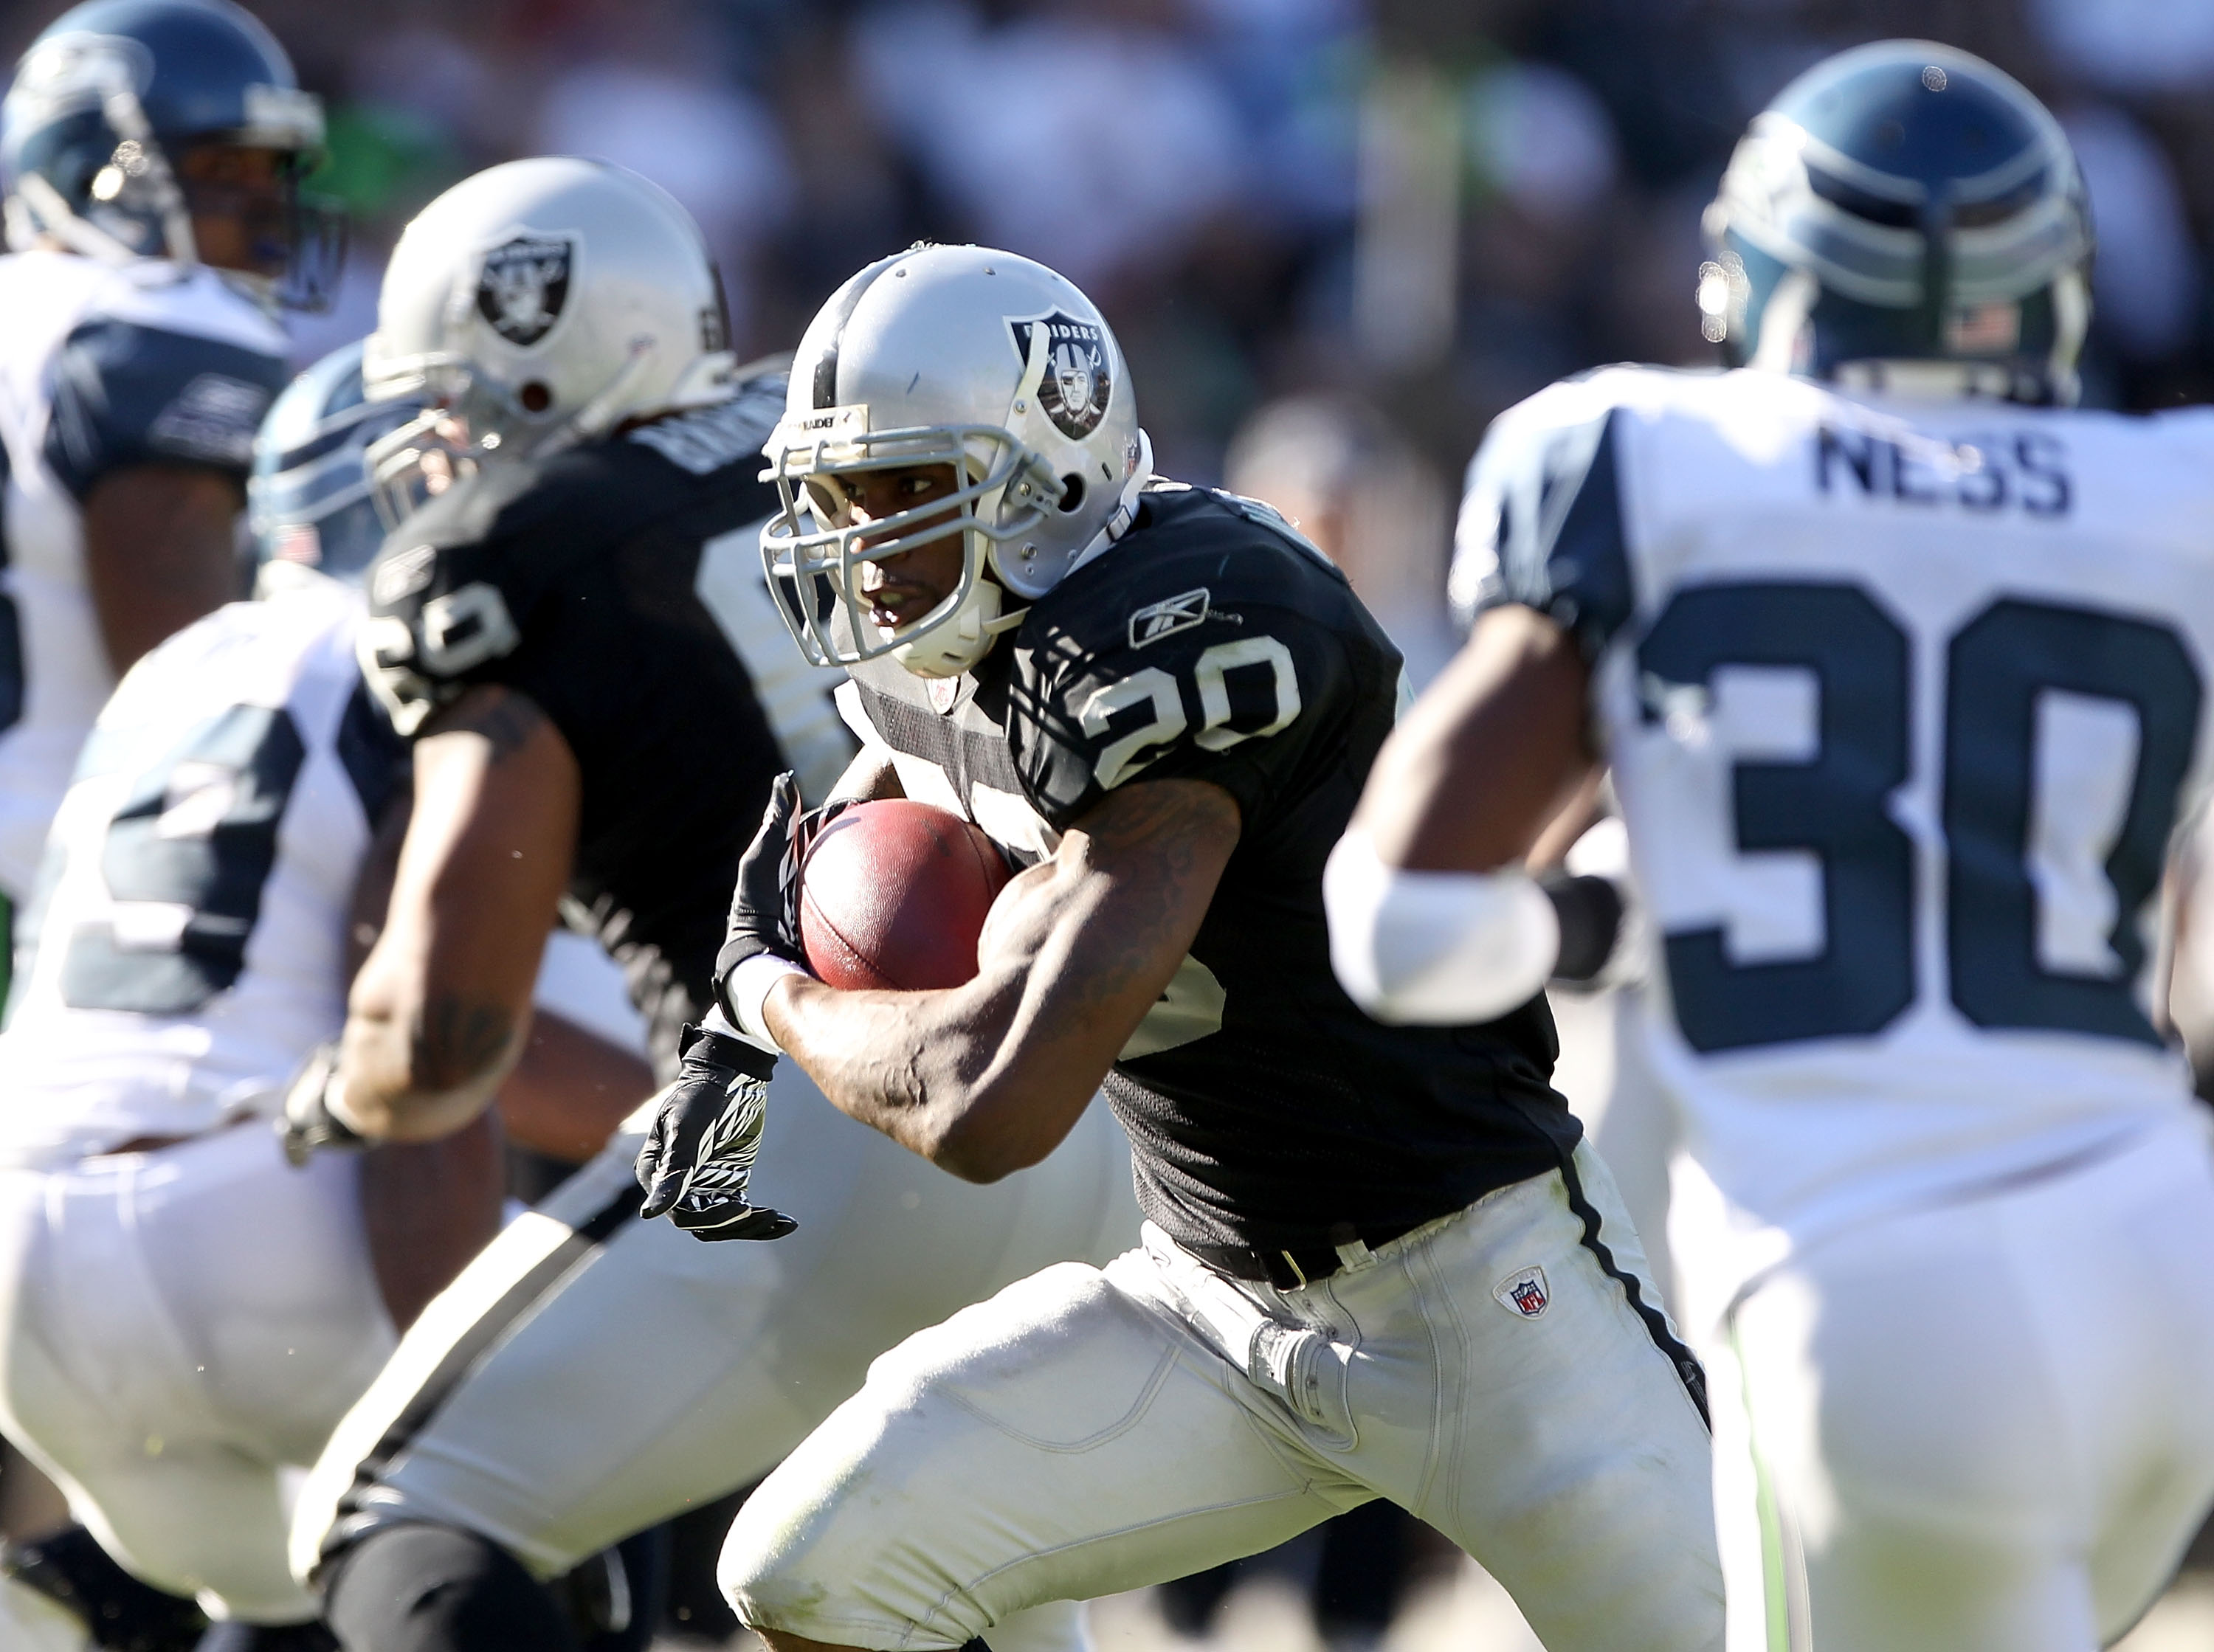 OAKLAND, CA - OCTOBER 31:  Darren McFadden #20 of the Oakland Raiders runs with the ball against the Seattle Seahawks at Oakland-Alameda County Coliseum on October 31, 2010 in Oakland, California.  (Photo by Ezra Shaw/Getty Images)